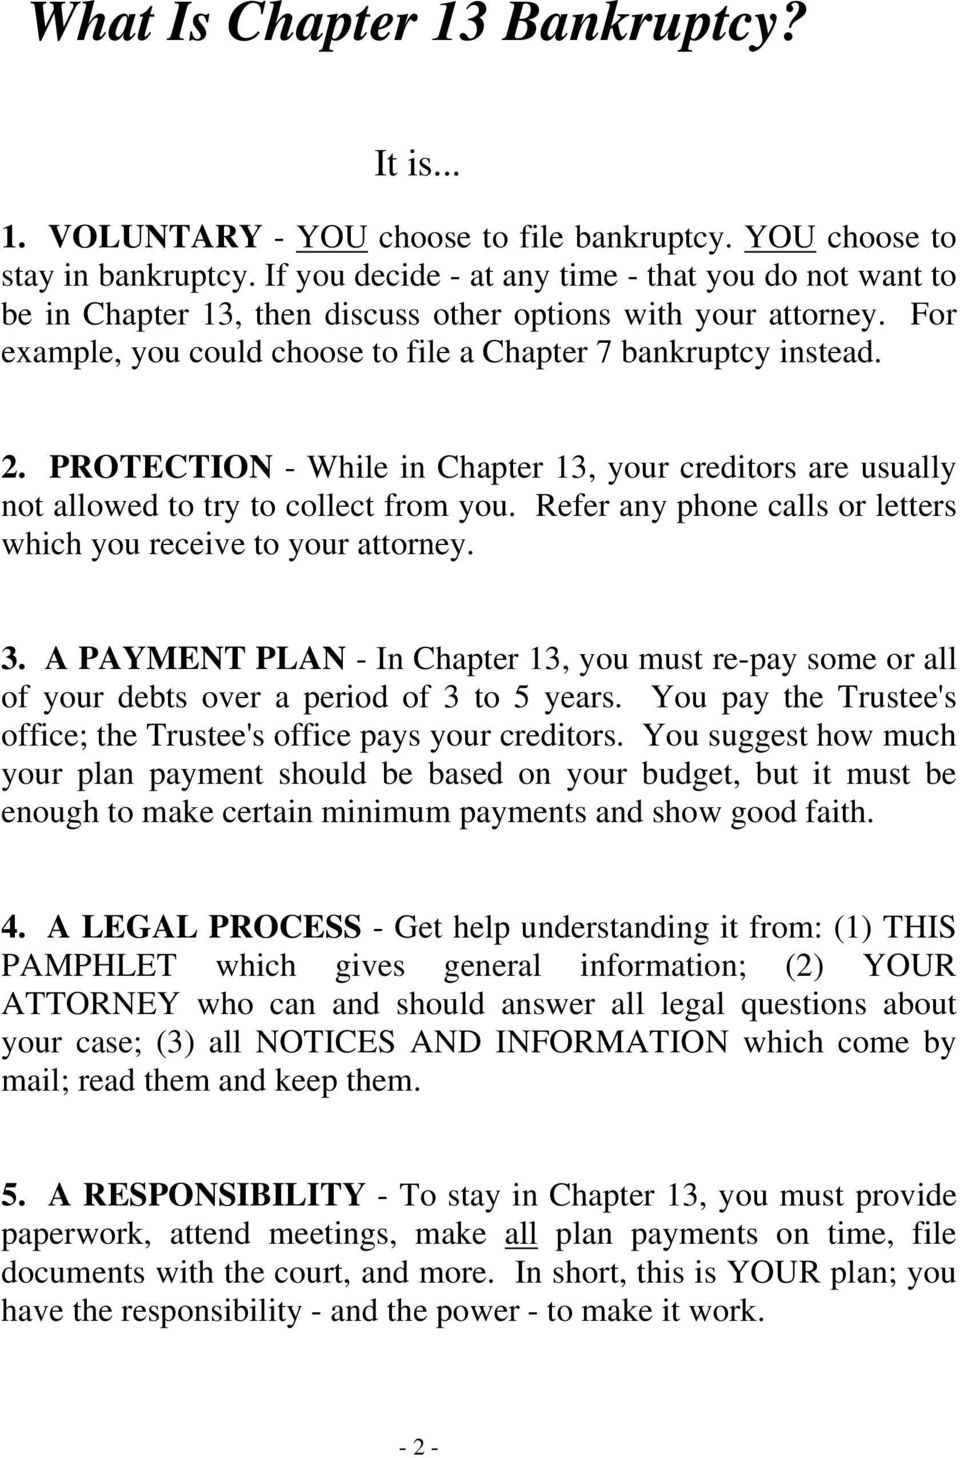 PROTECTION - While in Chapter 13, your creditors are usually not allowed to try to collect from you. Refer any phone calls or letters which you receive to your attorney. 3.